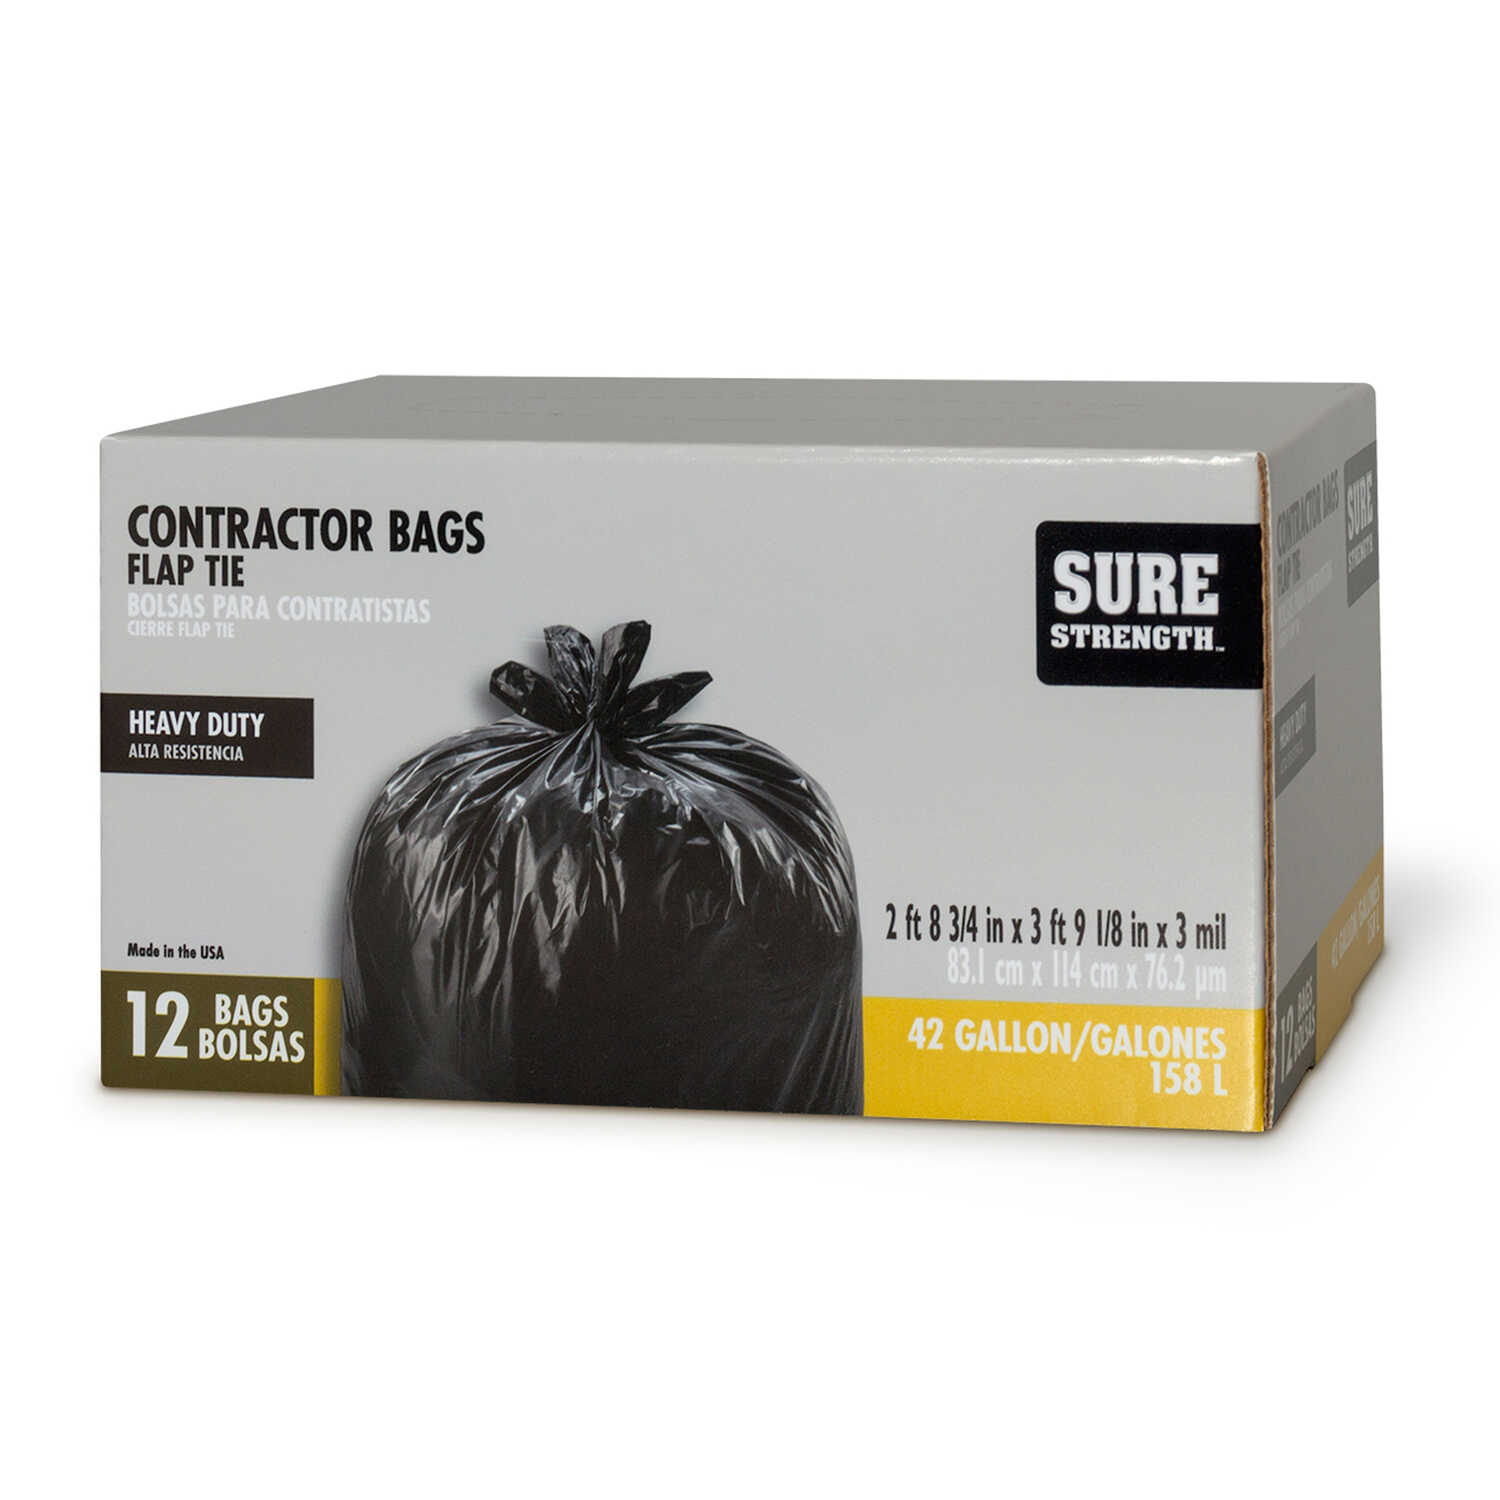 Sure Strength  42 gal. Contractor Bags  Flap Tie  12 pk